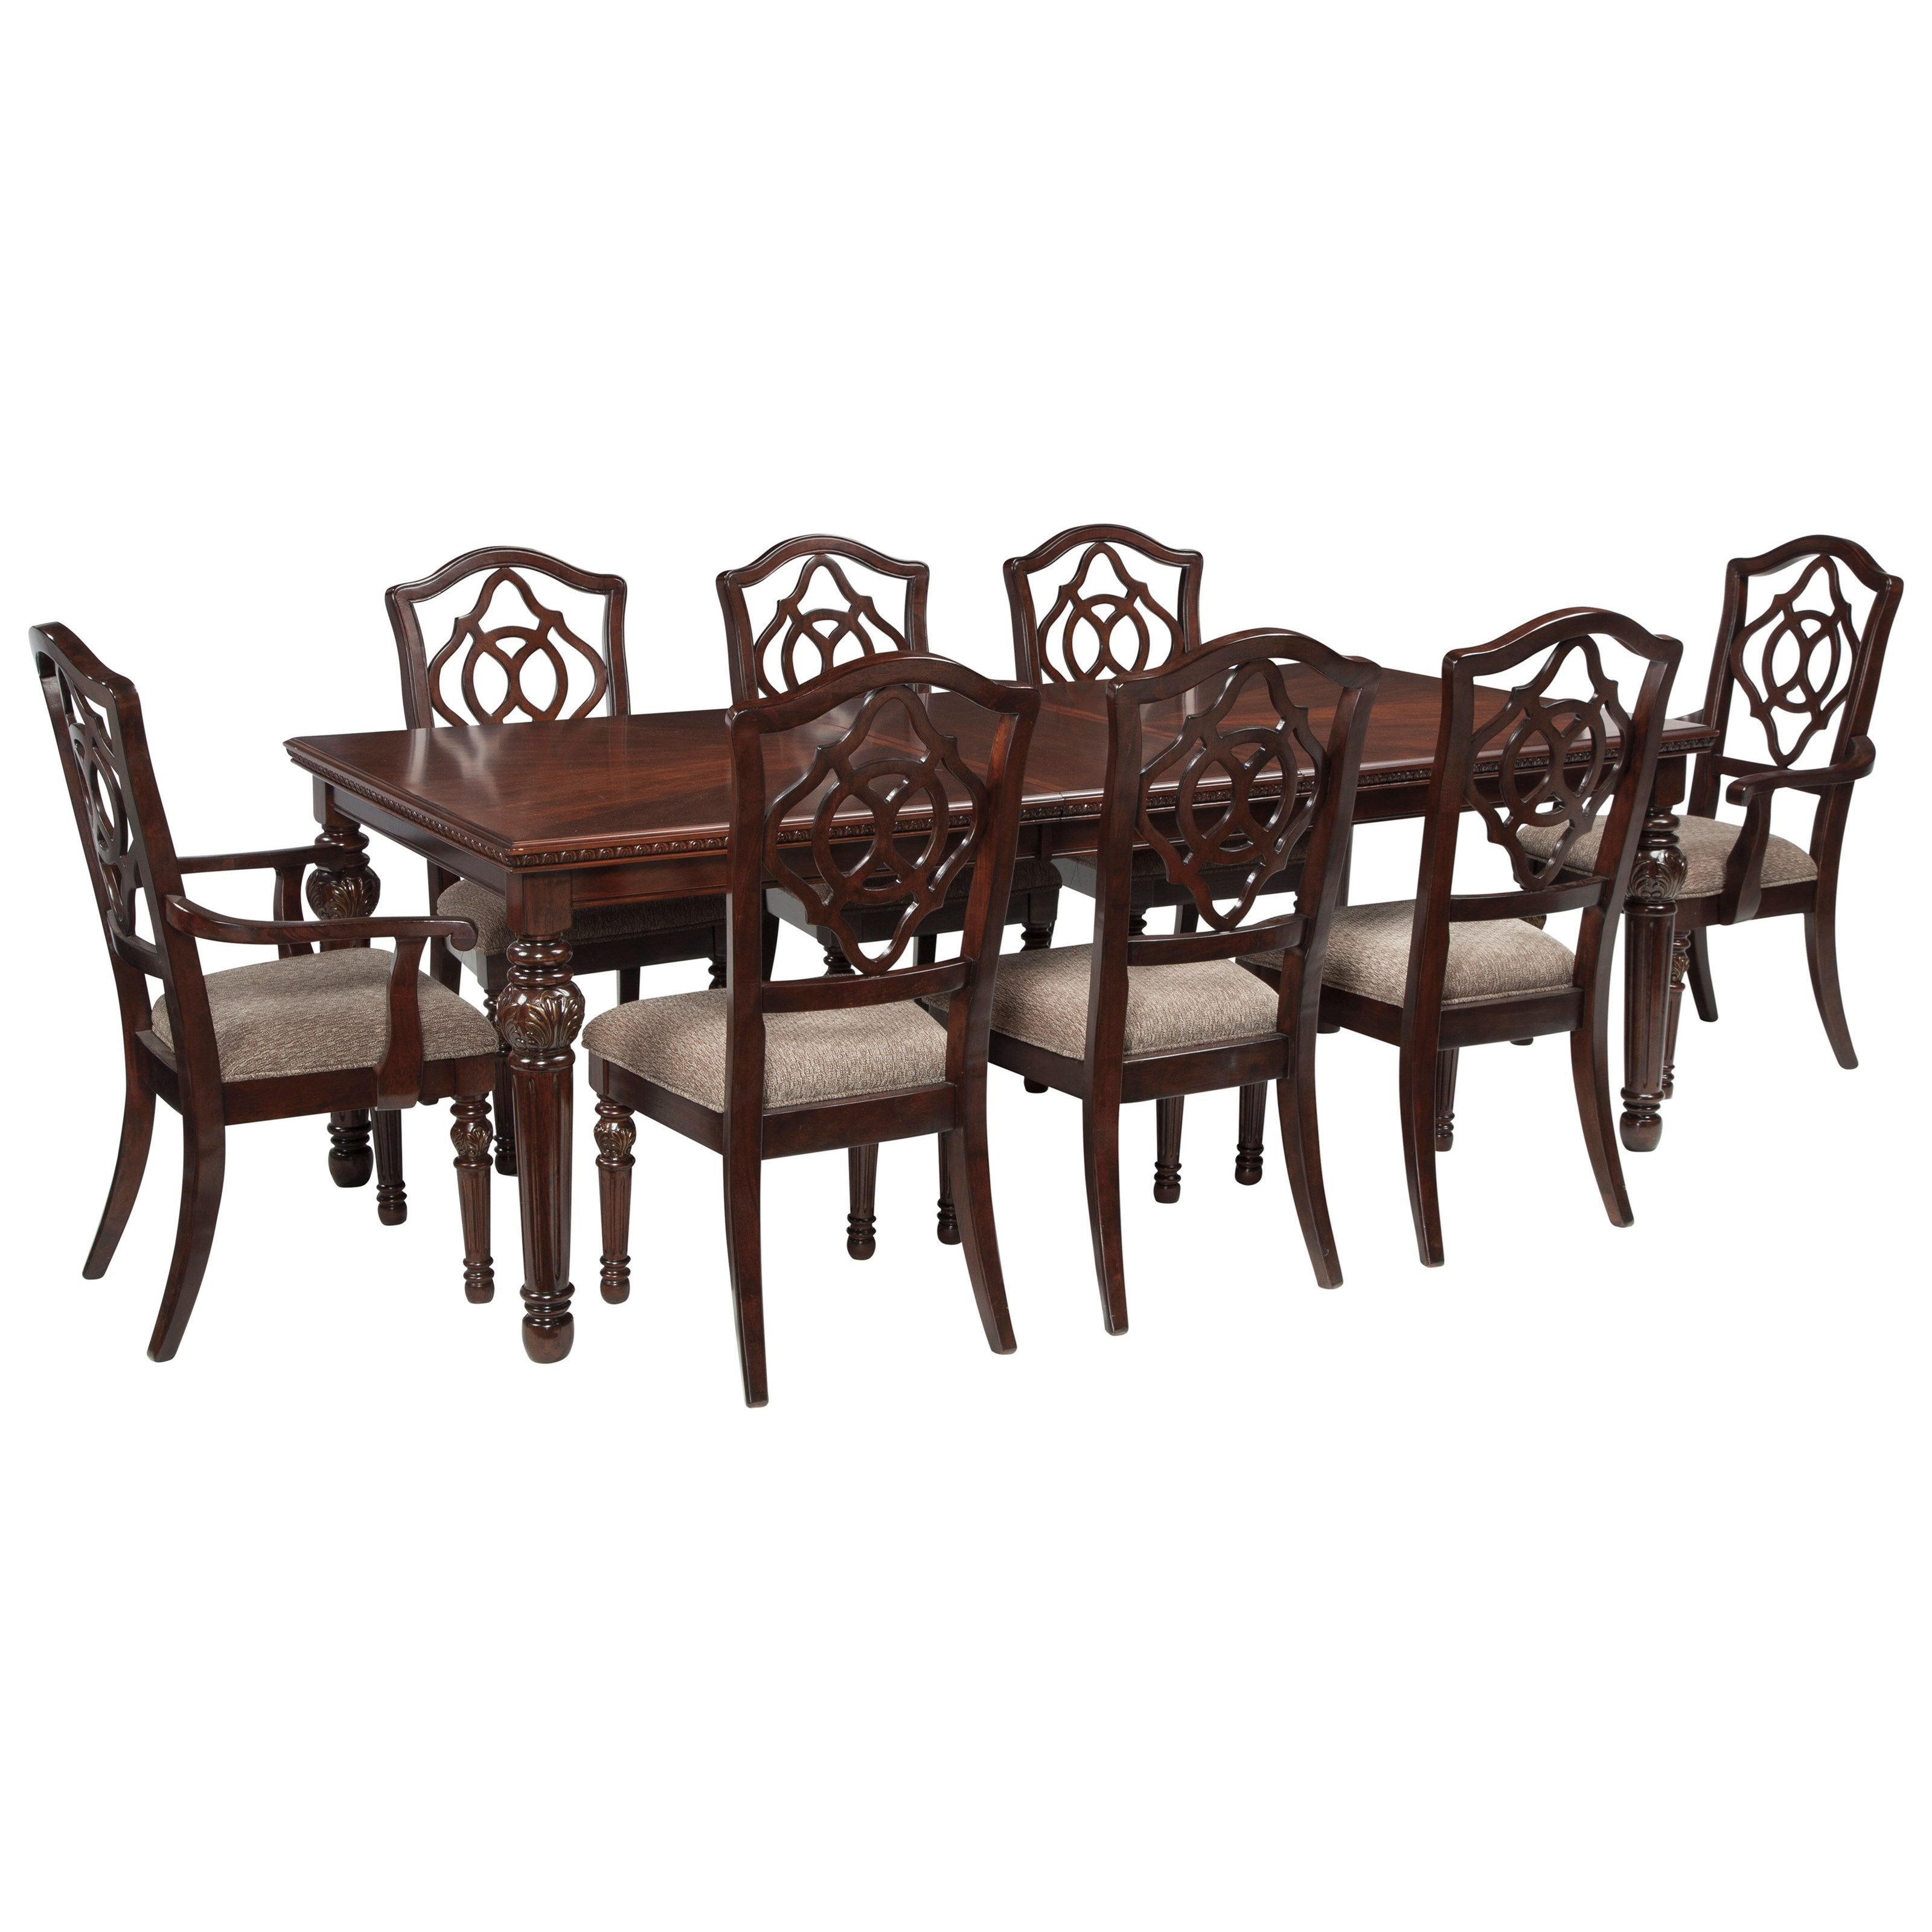 Signature Design by Ashley Leahlyn9-Piece Rectangular Dining Table Set ...  sc 1 st  Royal Furniture & Signature Design by Ashley Leahlyn 9-Piece Rectangular Dining Table ...